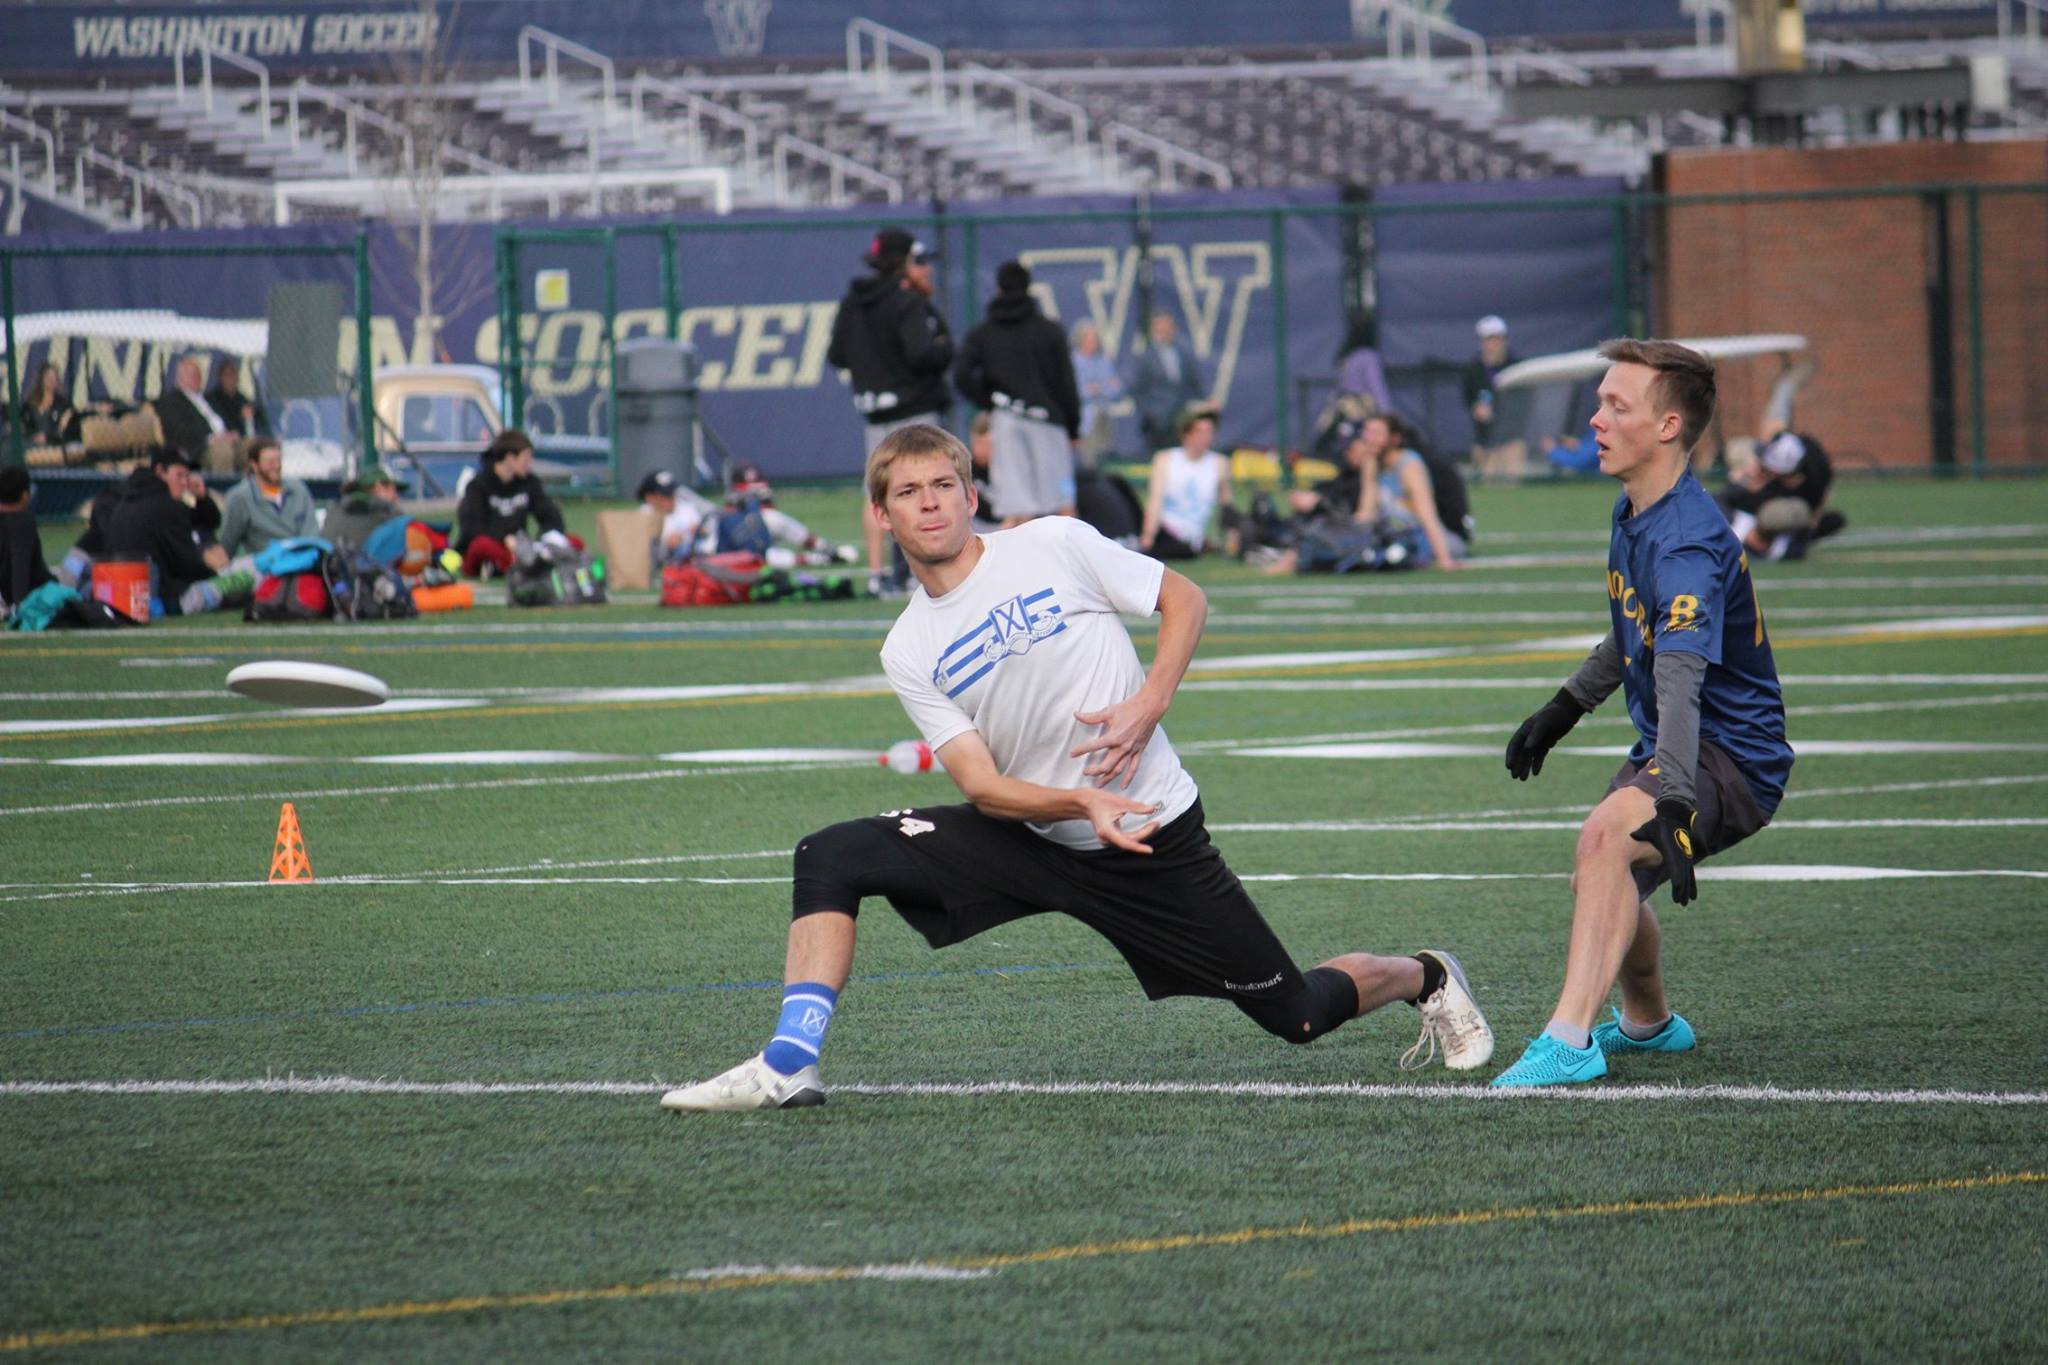 BYU's Jason McKeen at the Northwest Challenge. Photo: BYU Ultimate's Facebook page.